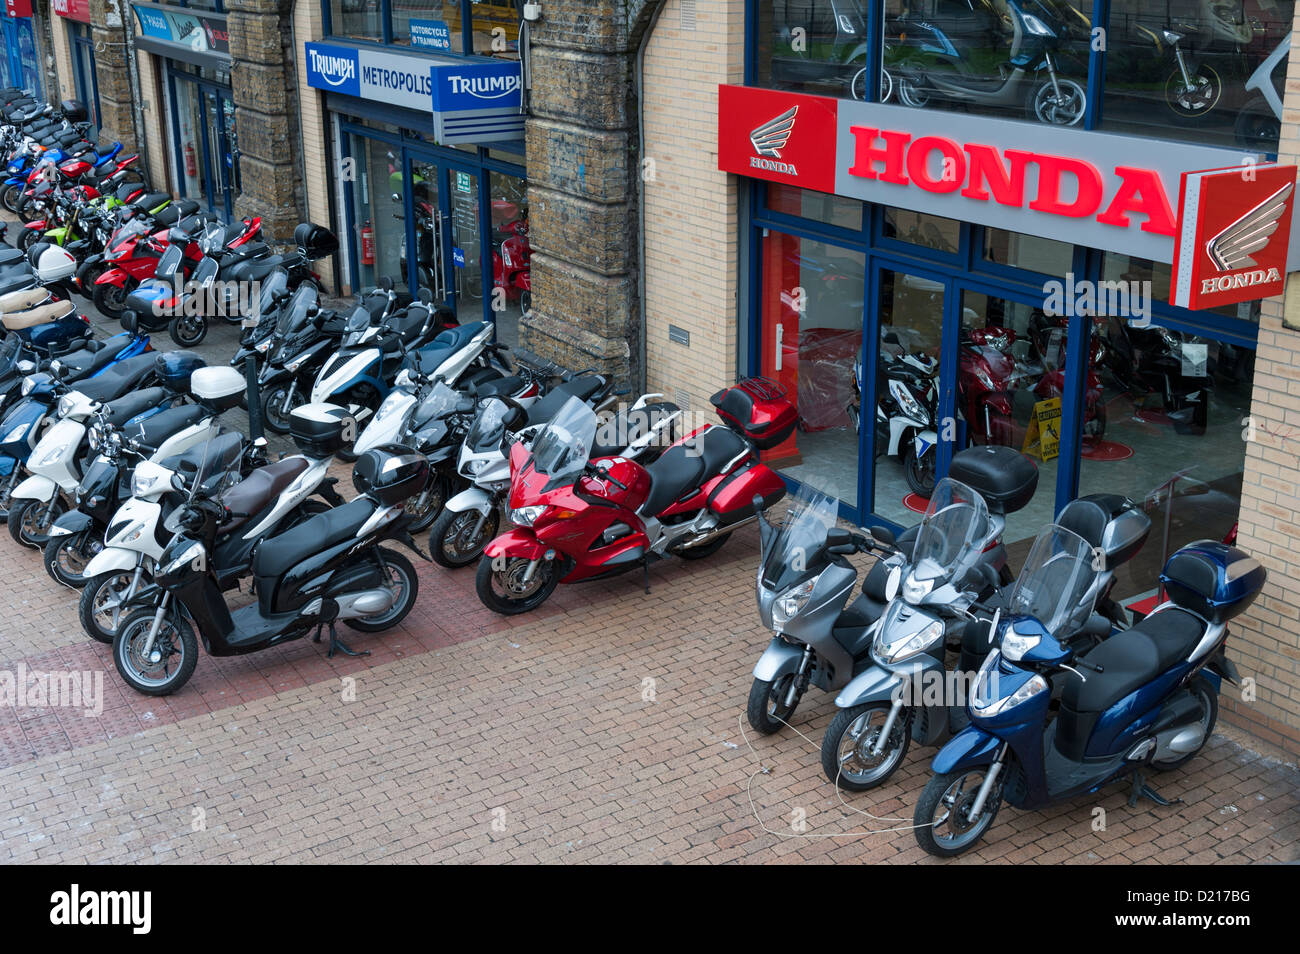 Honda Motorcycle Stock Photos Honda Motorcycle Stock Images Alamy